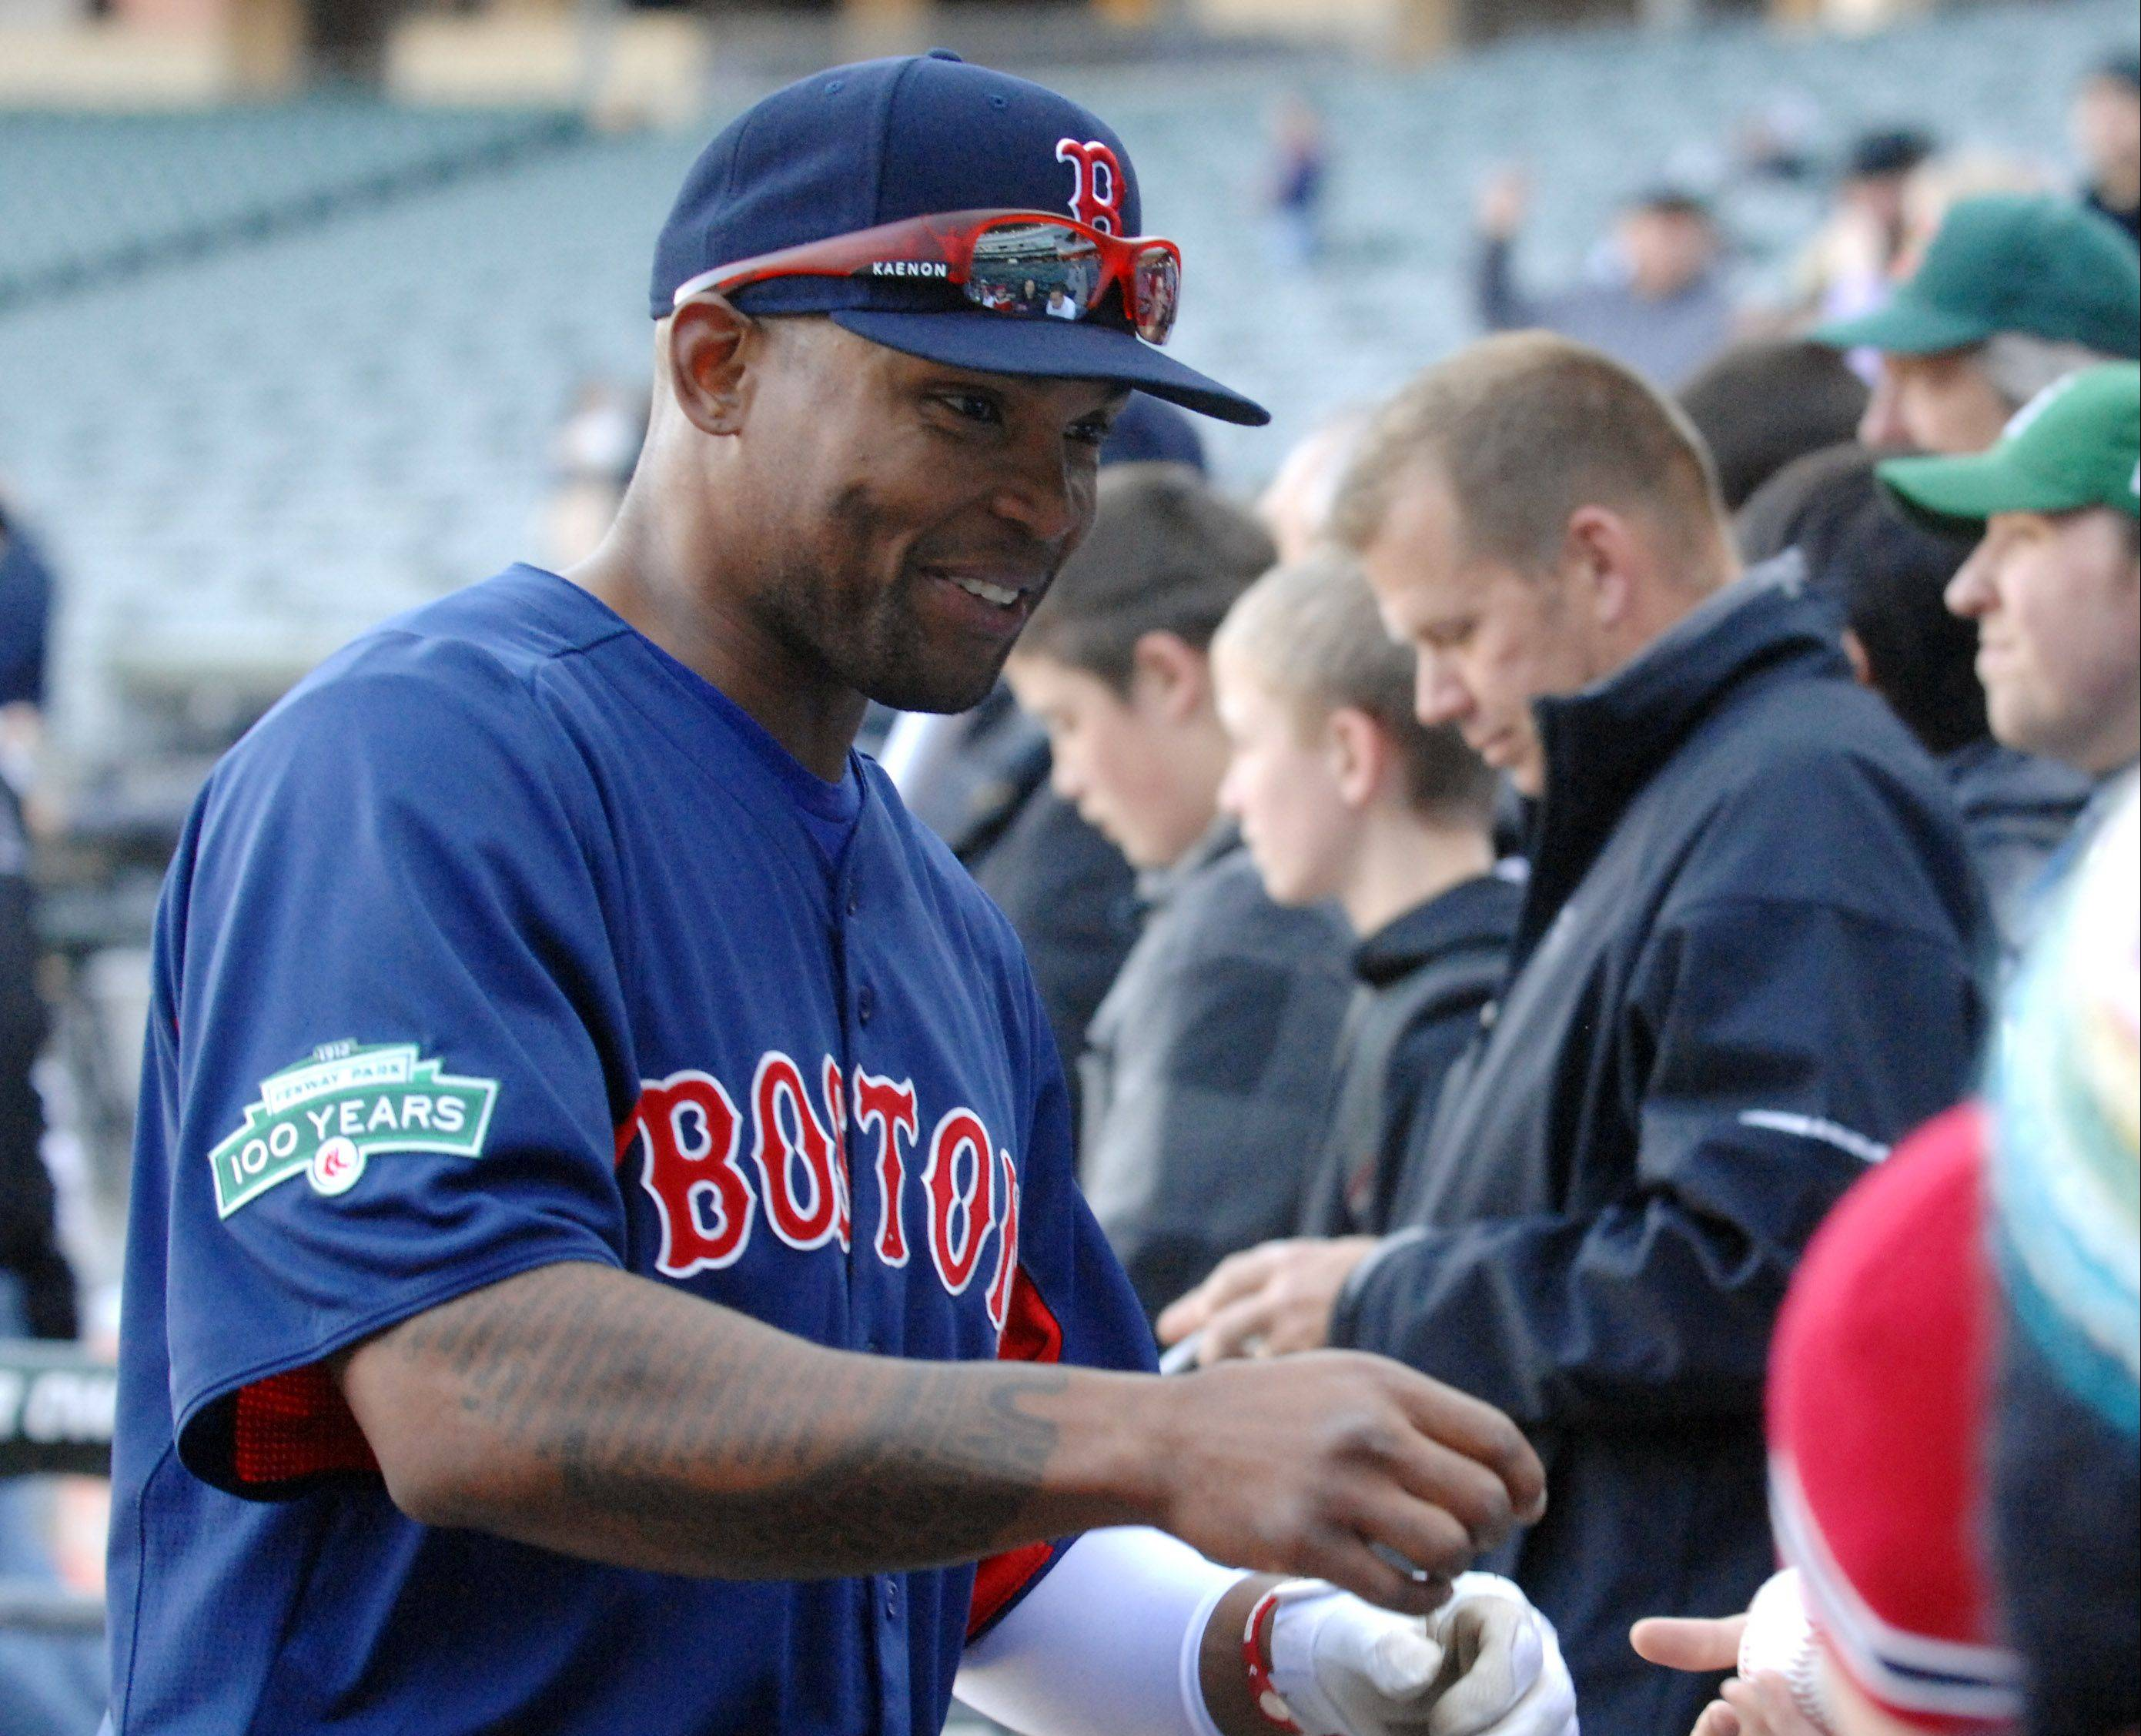 Marlon Byrd both apologetic, thankful to Cubs